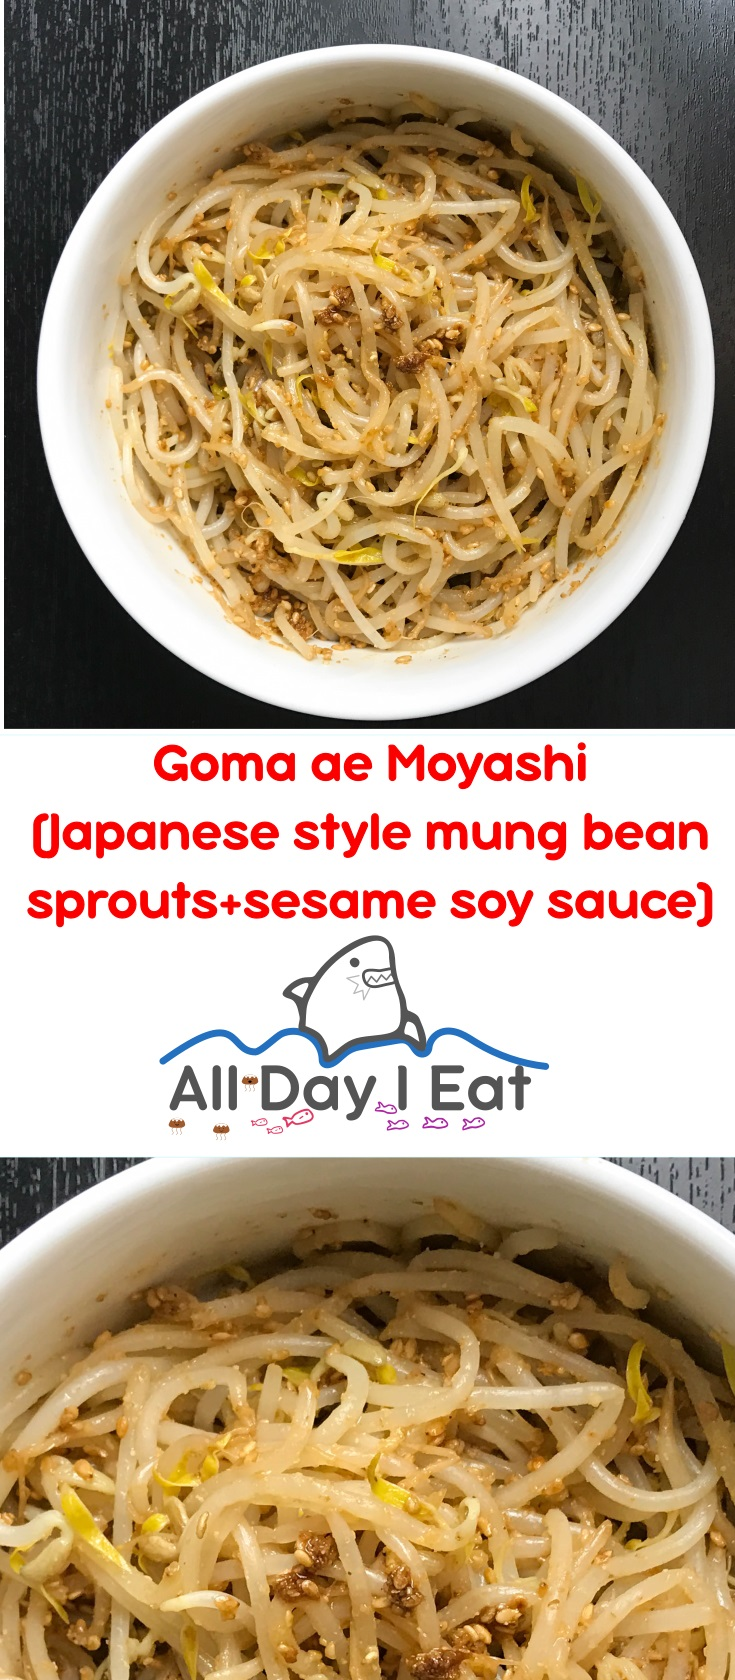 Moyashi Goma-ae (Japanese style mung bean sprouts+sweet sesame soy) easy, tasty and healthy!! | www.alldayieat.com